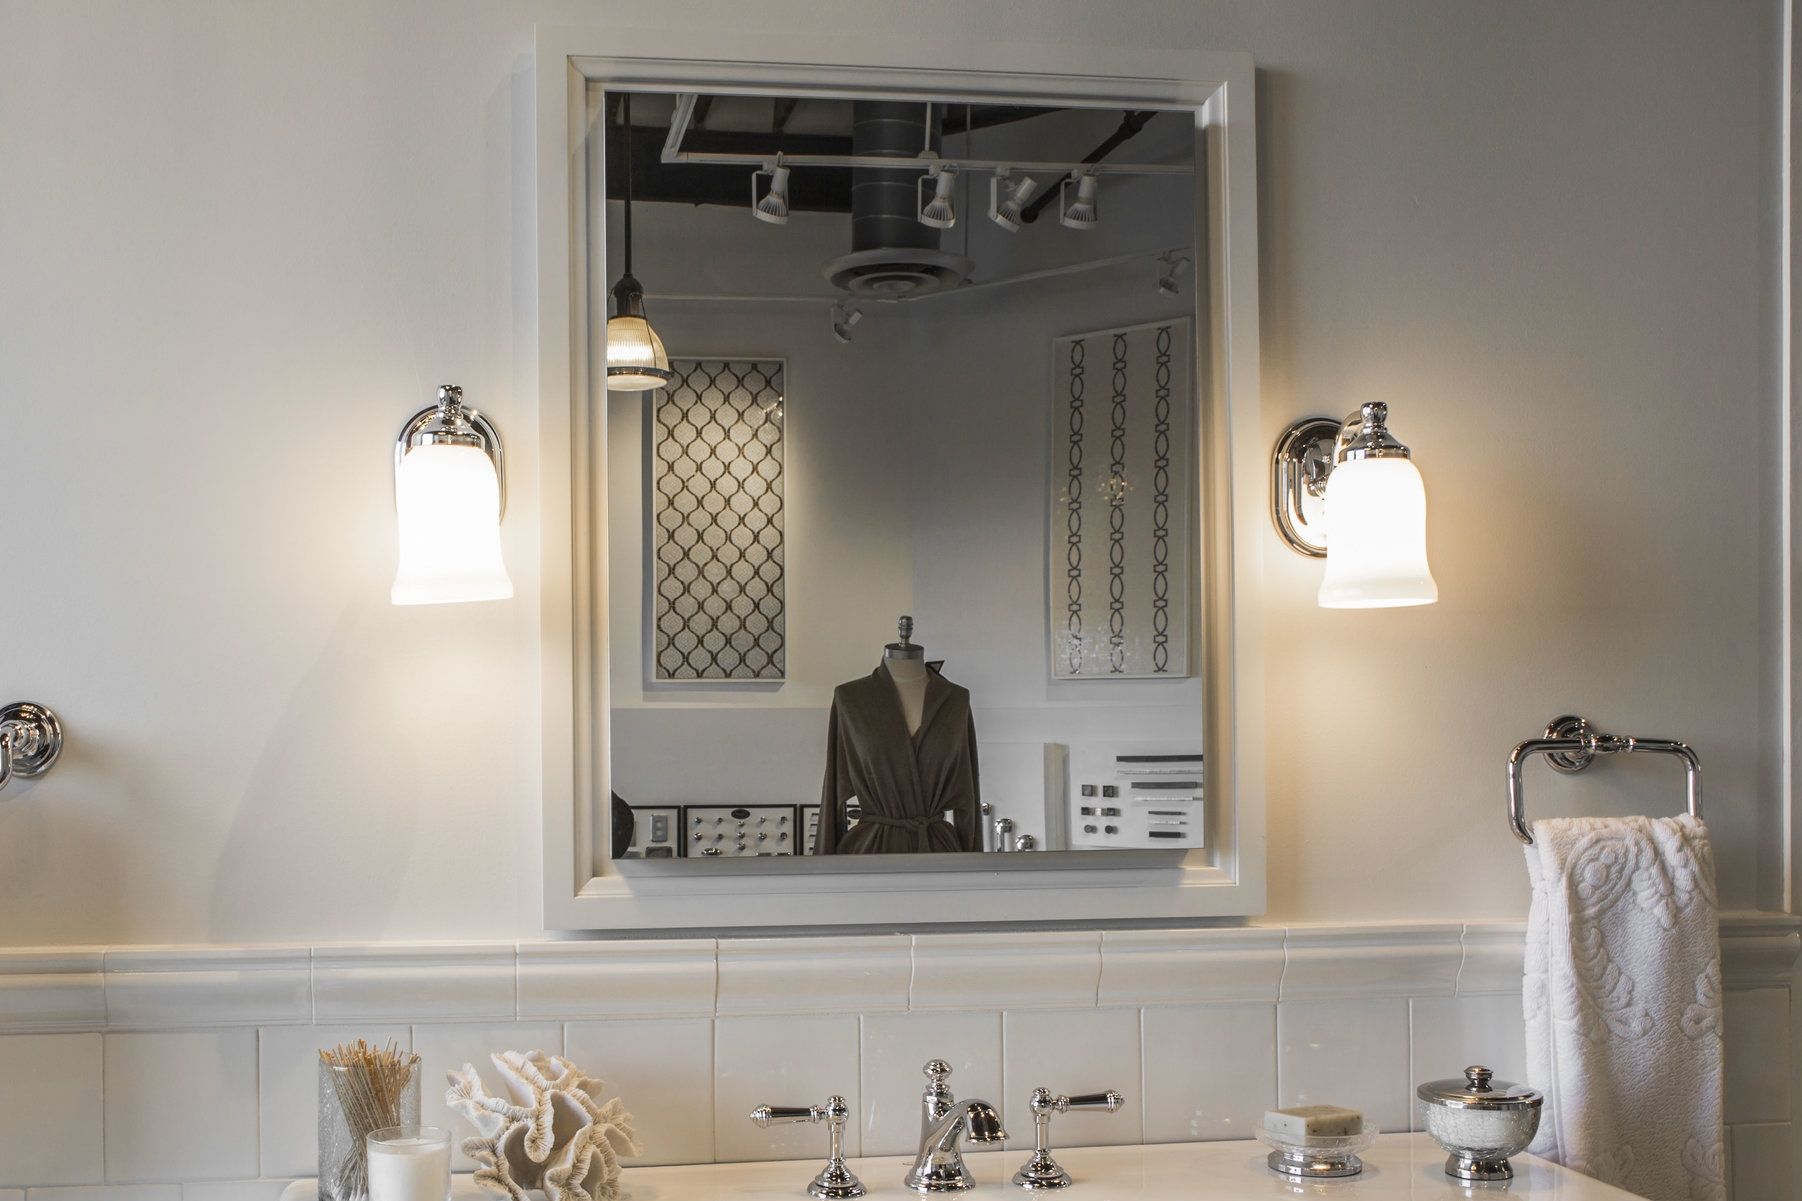 LIGHTING     Brighten up your new kitchen and bath with stunning fixtures from Visual Comfort, Hudson Valley, Ilex, and Norwell.